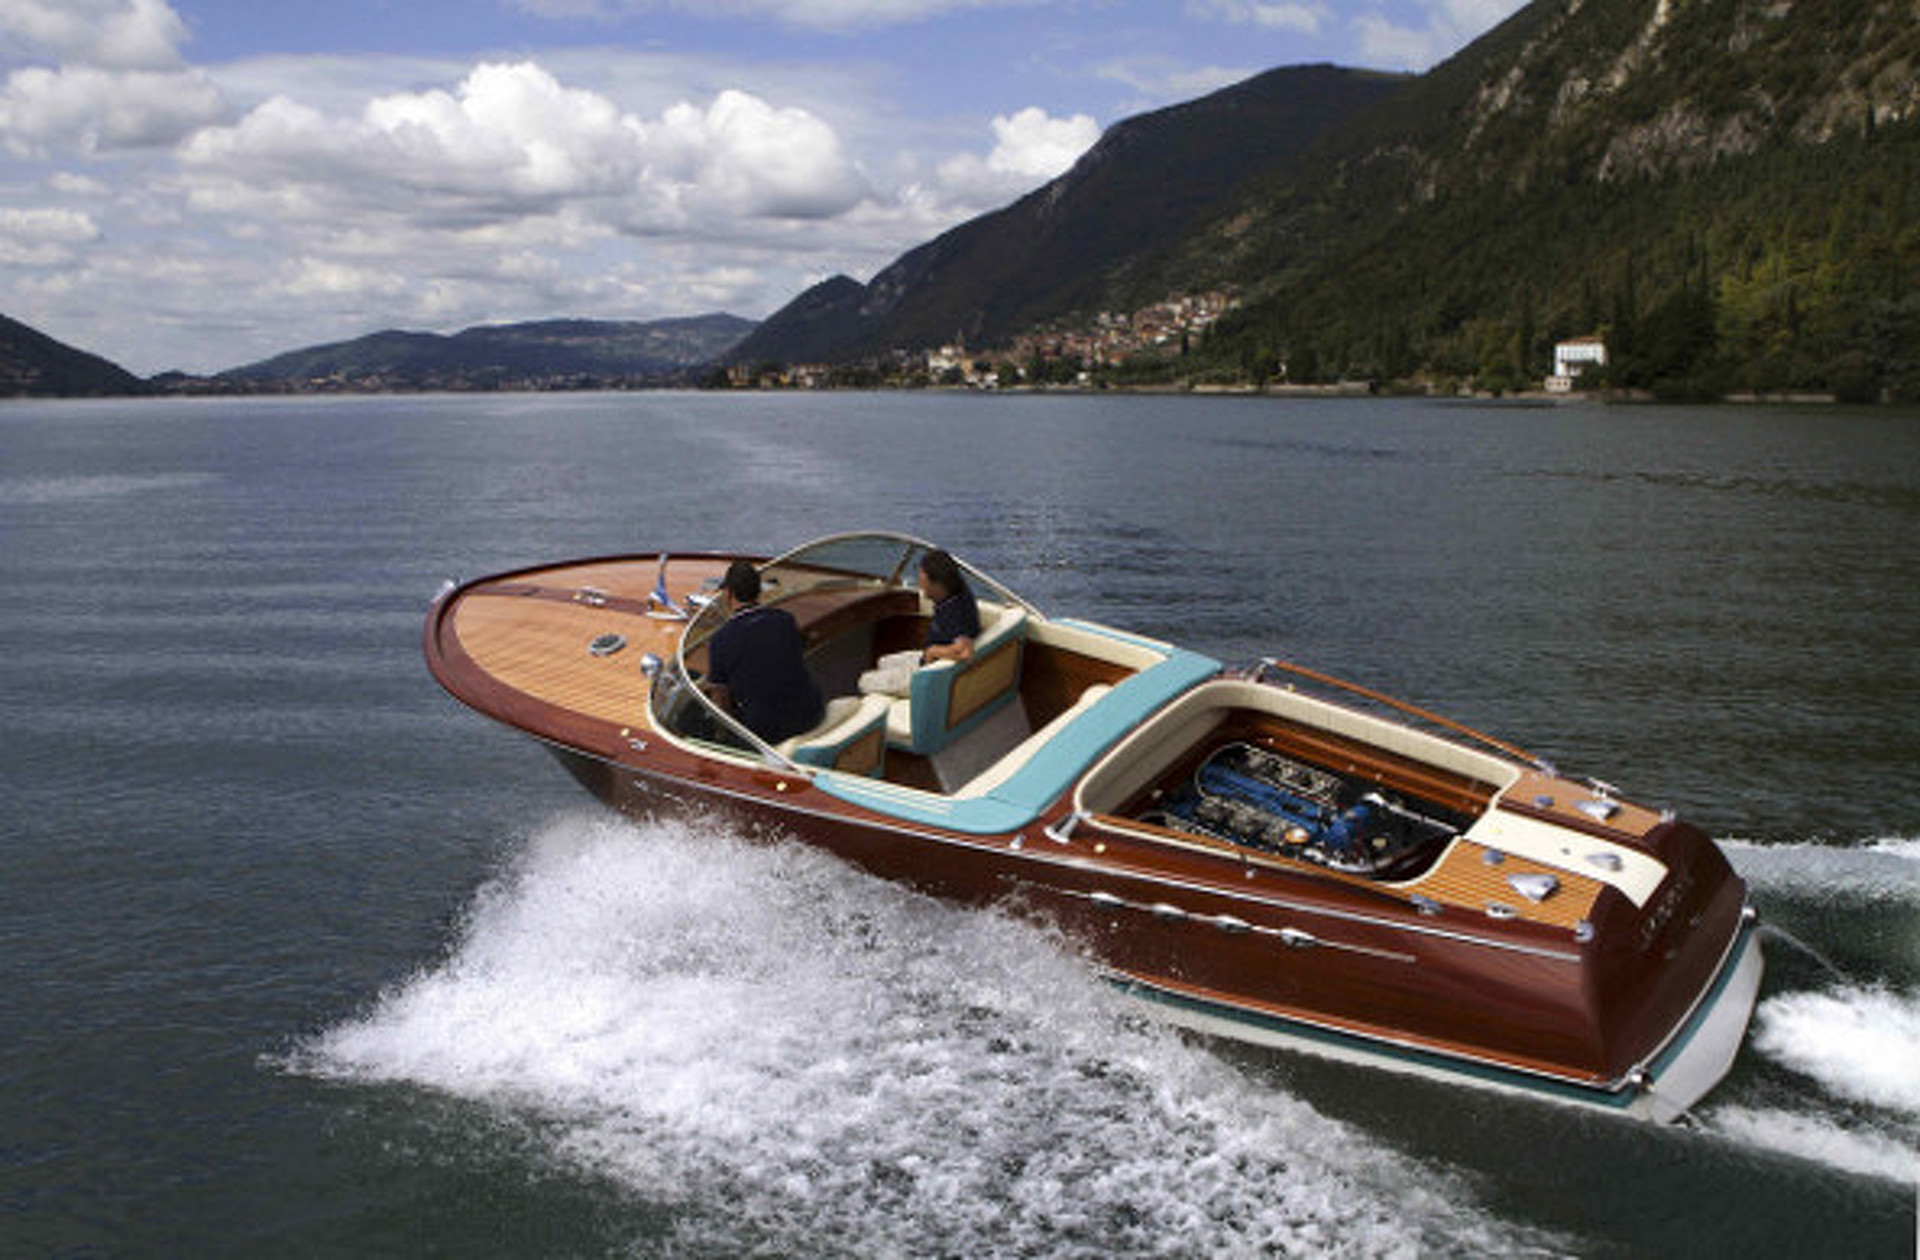 Twin-V12-Powered Speedboat Owned by Ferruccio Lamborghini Completely Restored